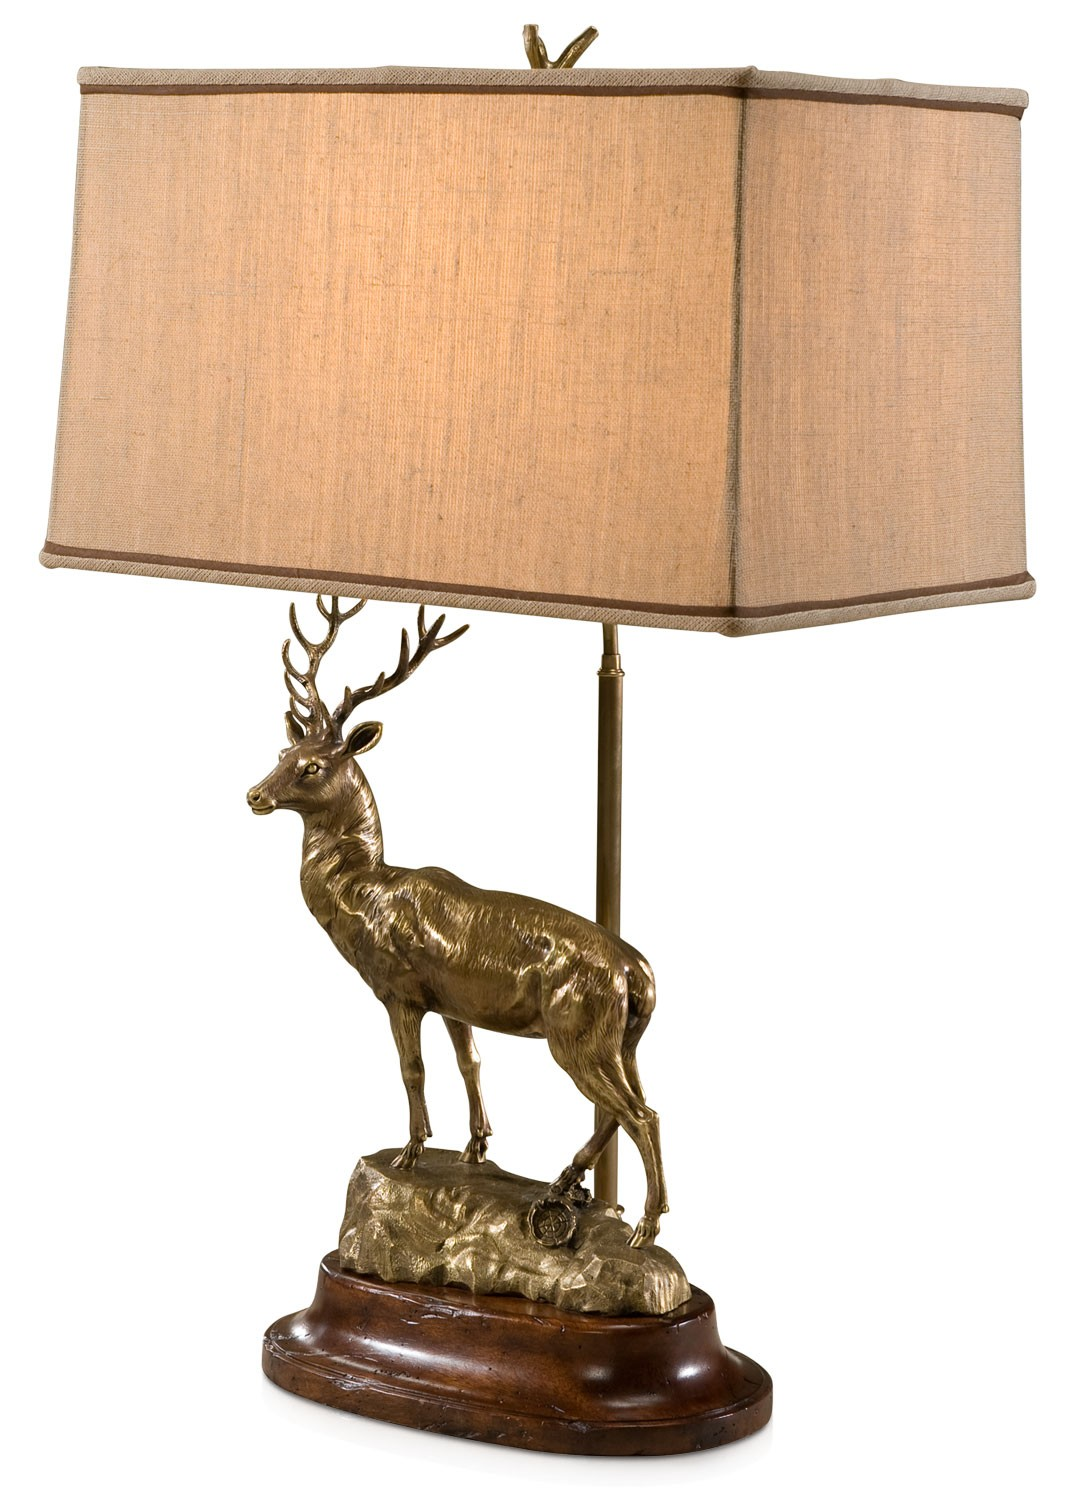 Brass model of a stag table lamp